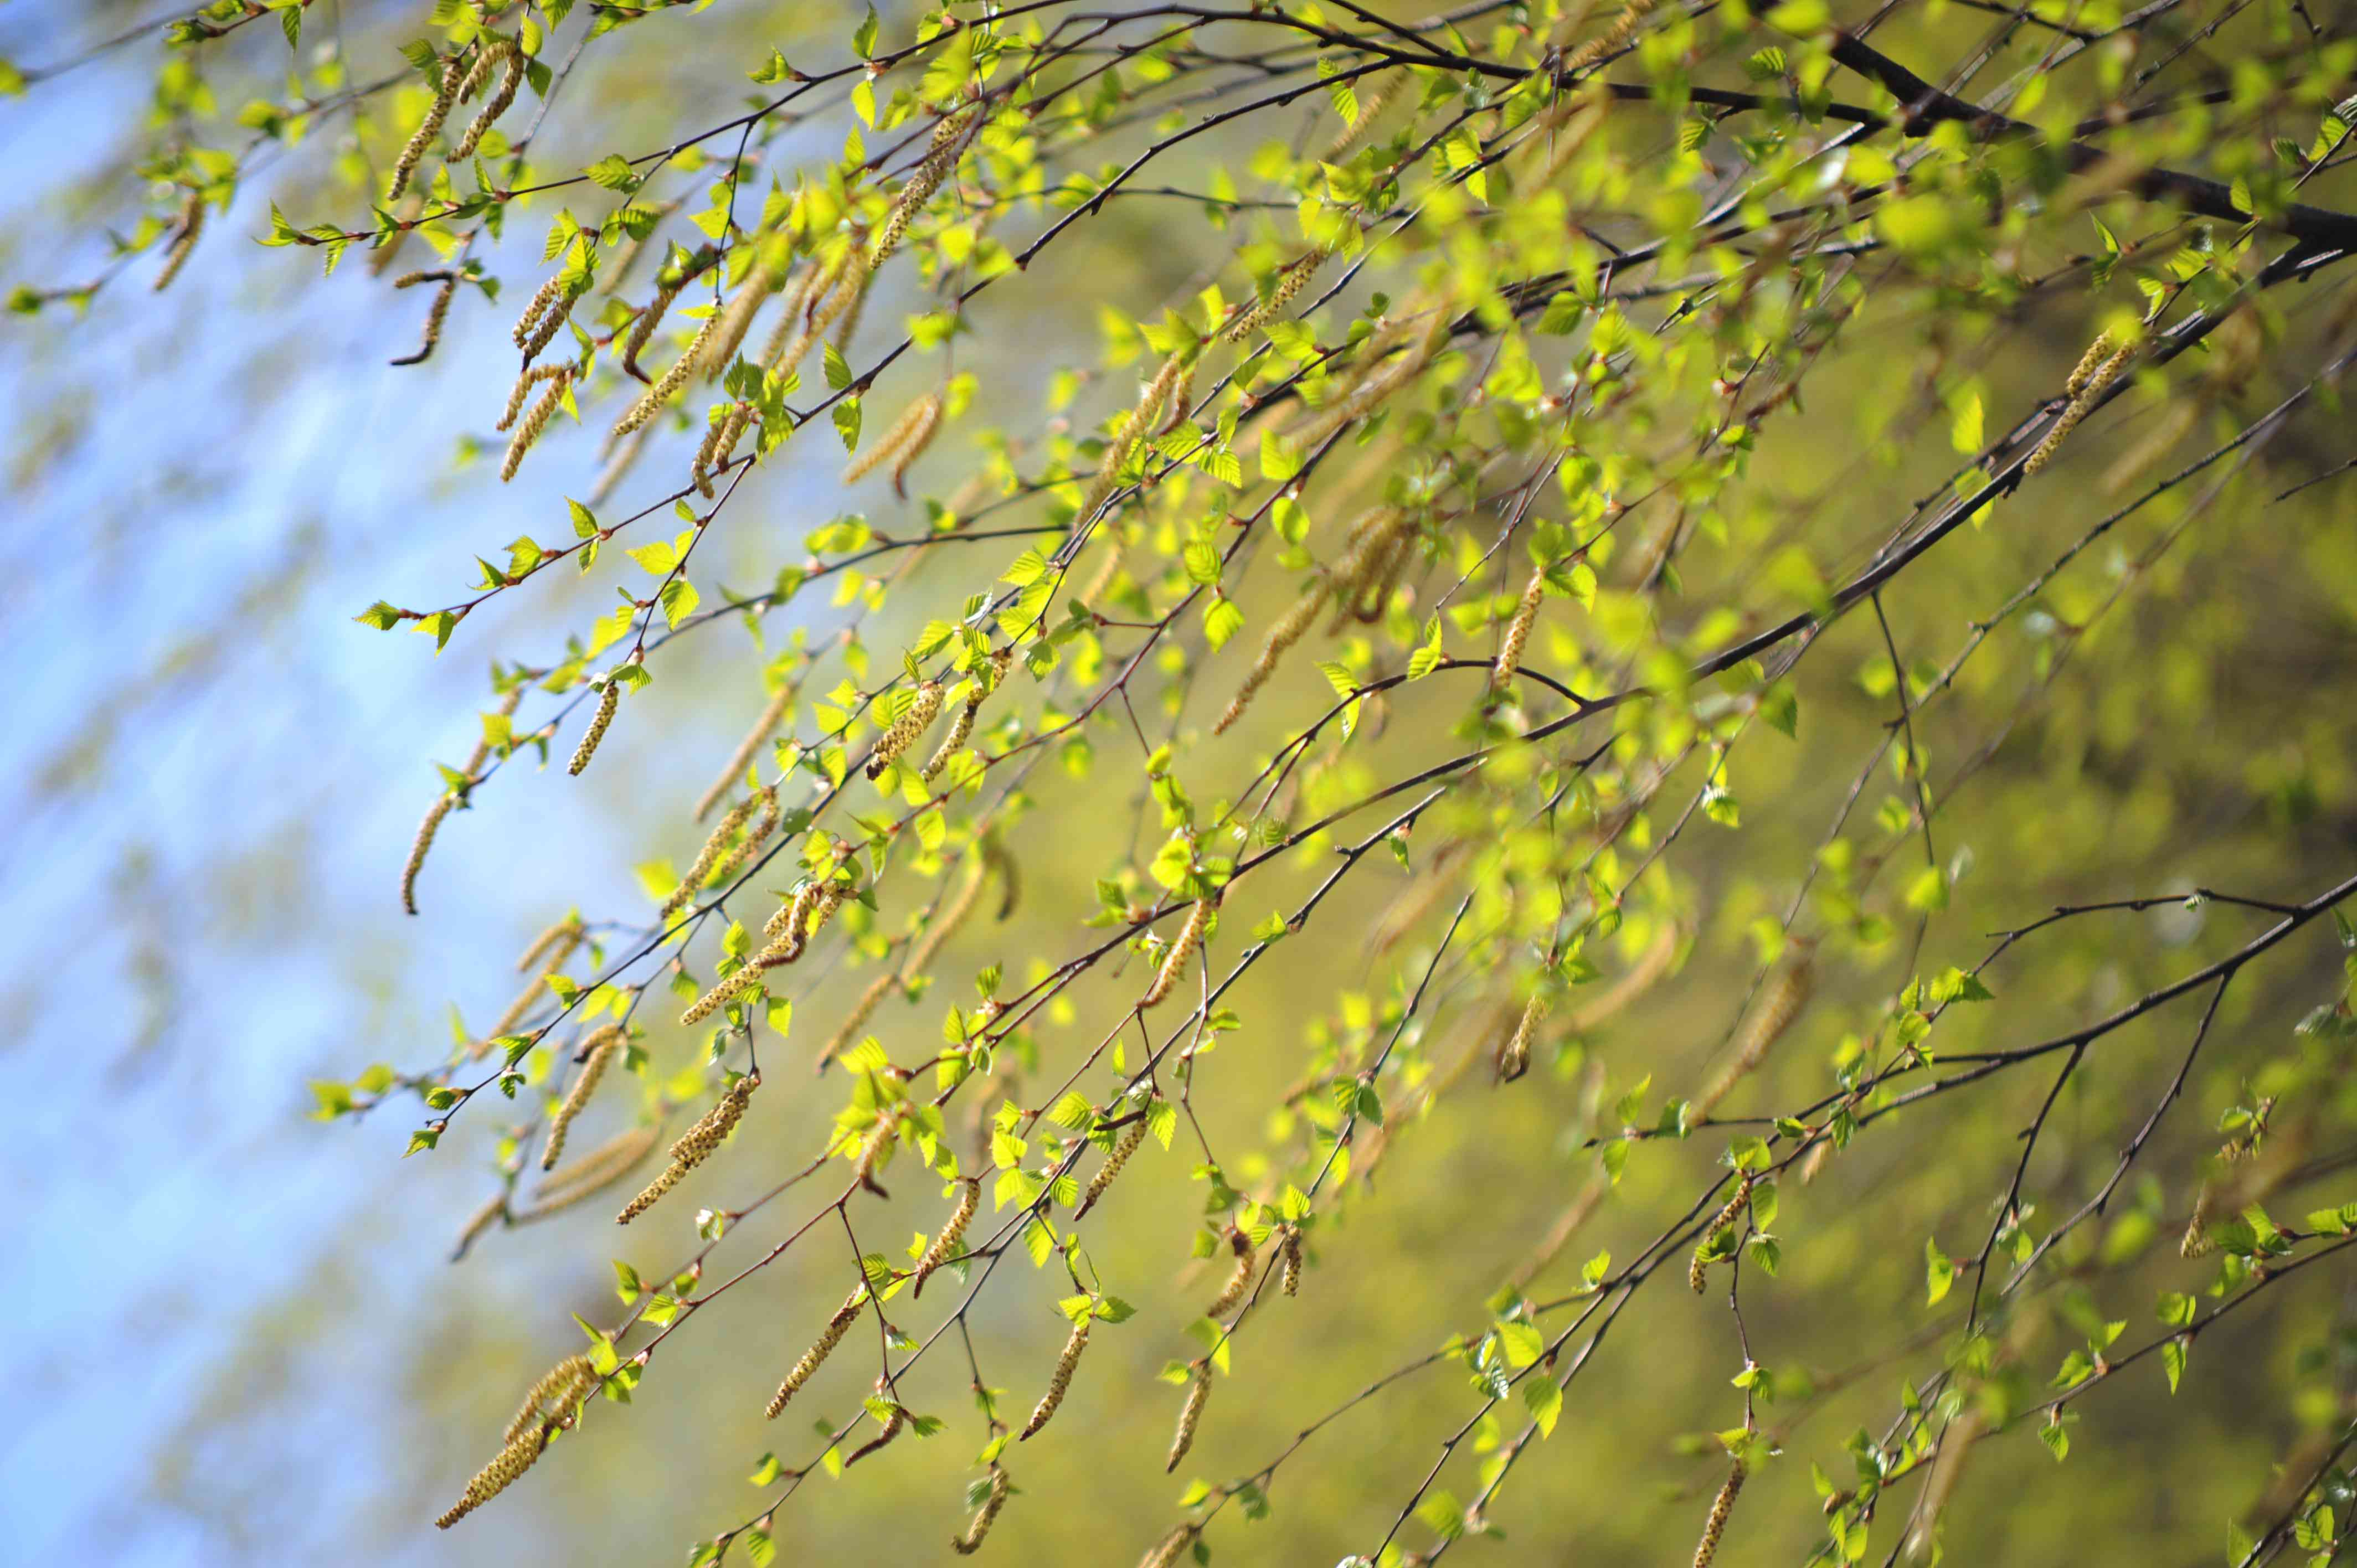 Silver birch tree branches with green leaf buds